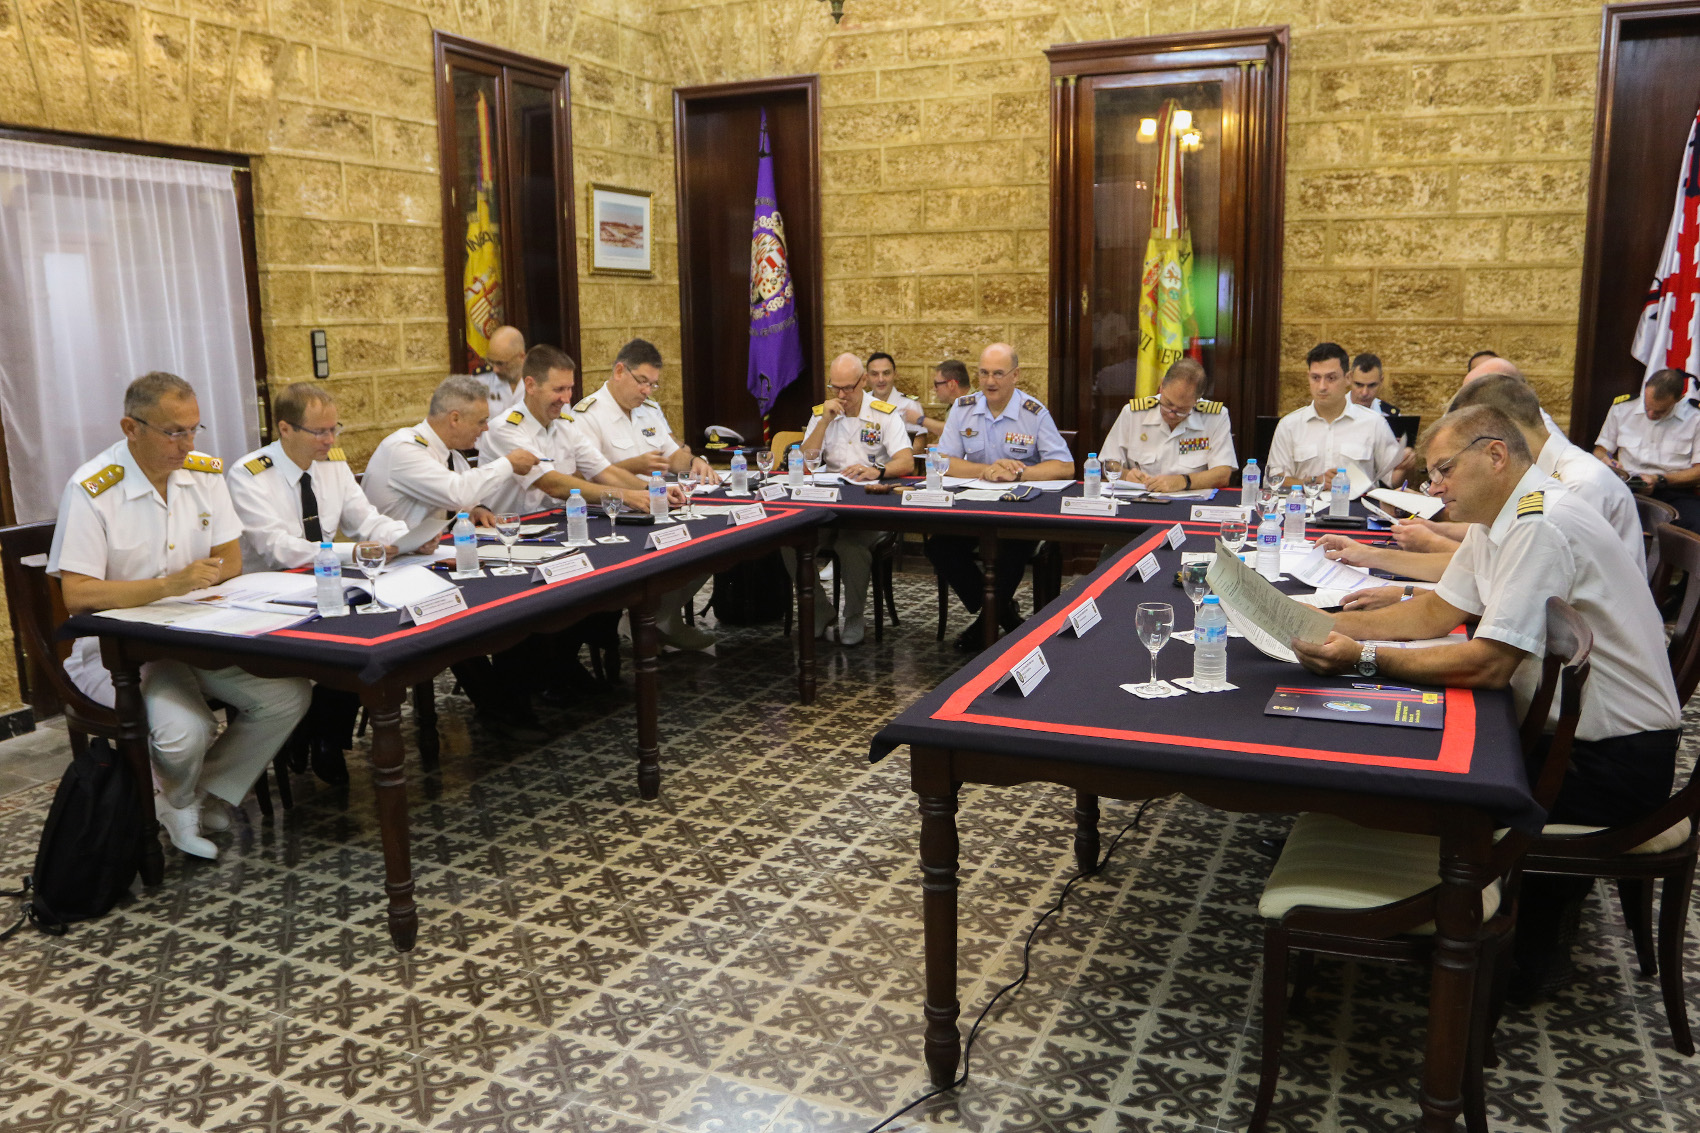 Meeting of the European Amphibious Initiative steering group